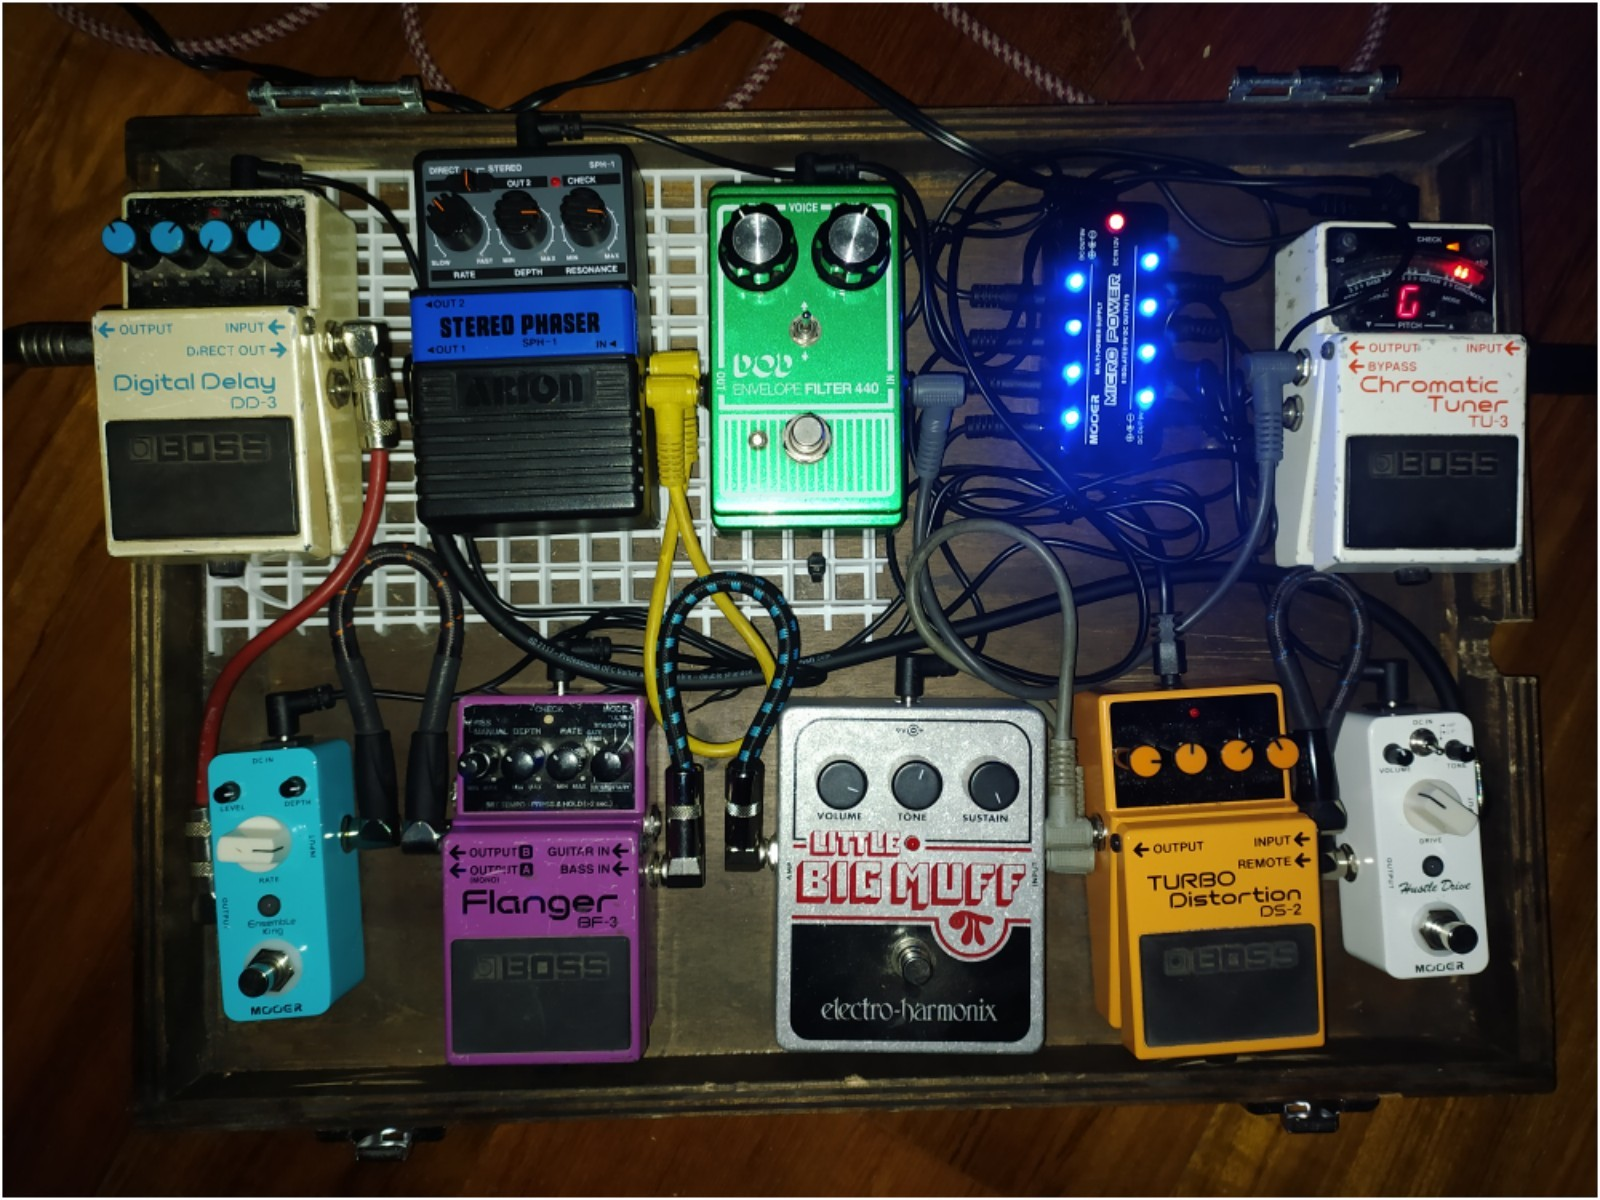 Photo of Boss BF-3 Flanger and more gear in a pedalboard and signal chain